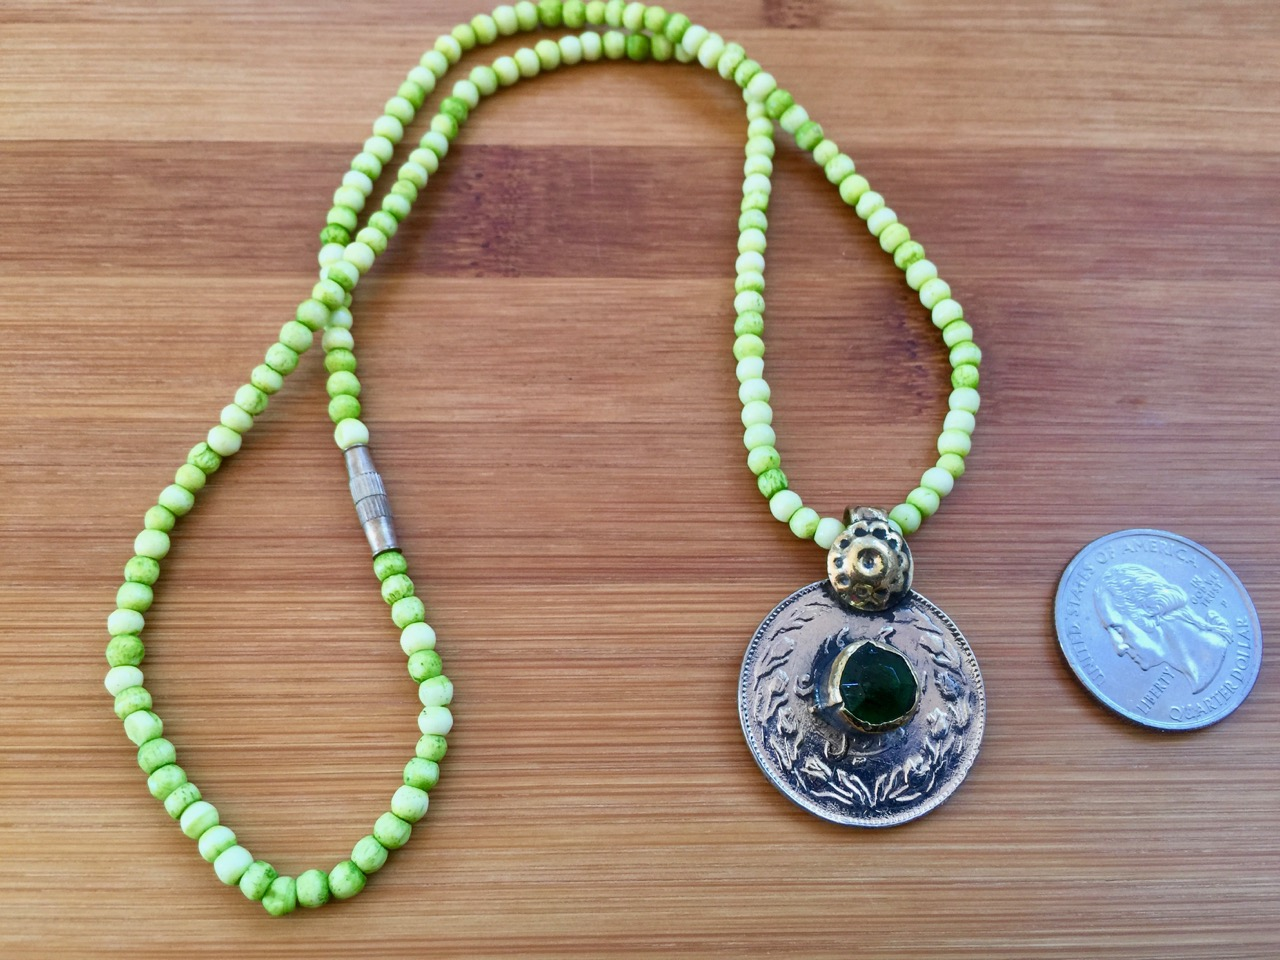 Handmade Afghanistan Pakistan Vintage Kuchi Green Glass Coin Medallion Bone Beaded Necklace